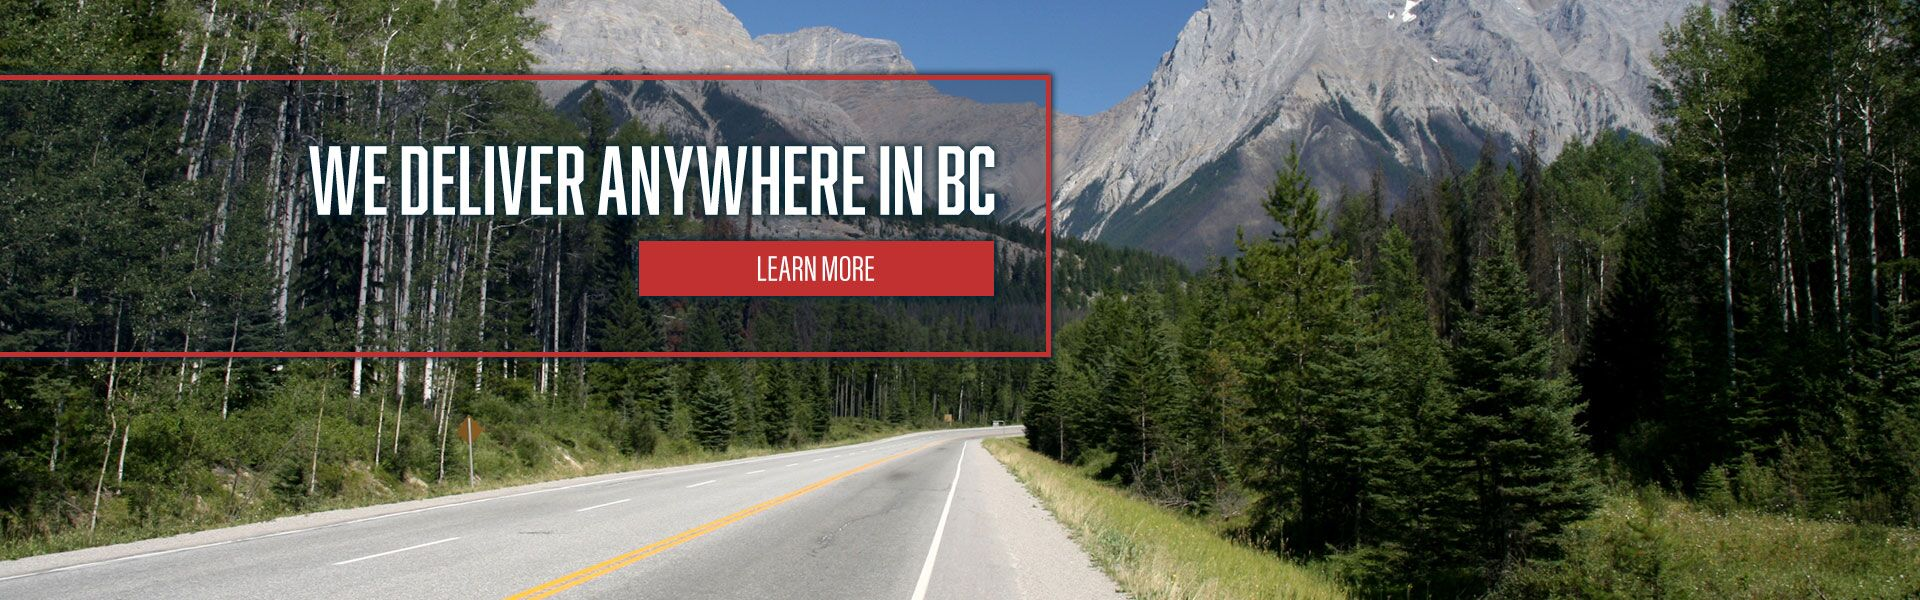 We Deliver Anywhere in BC